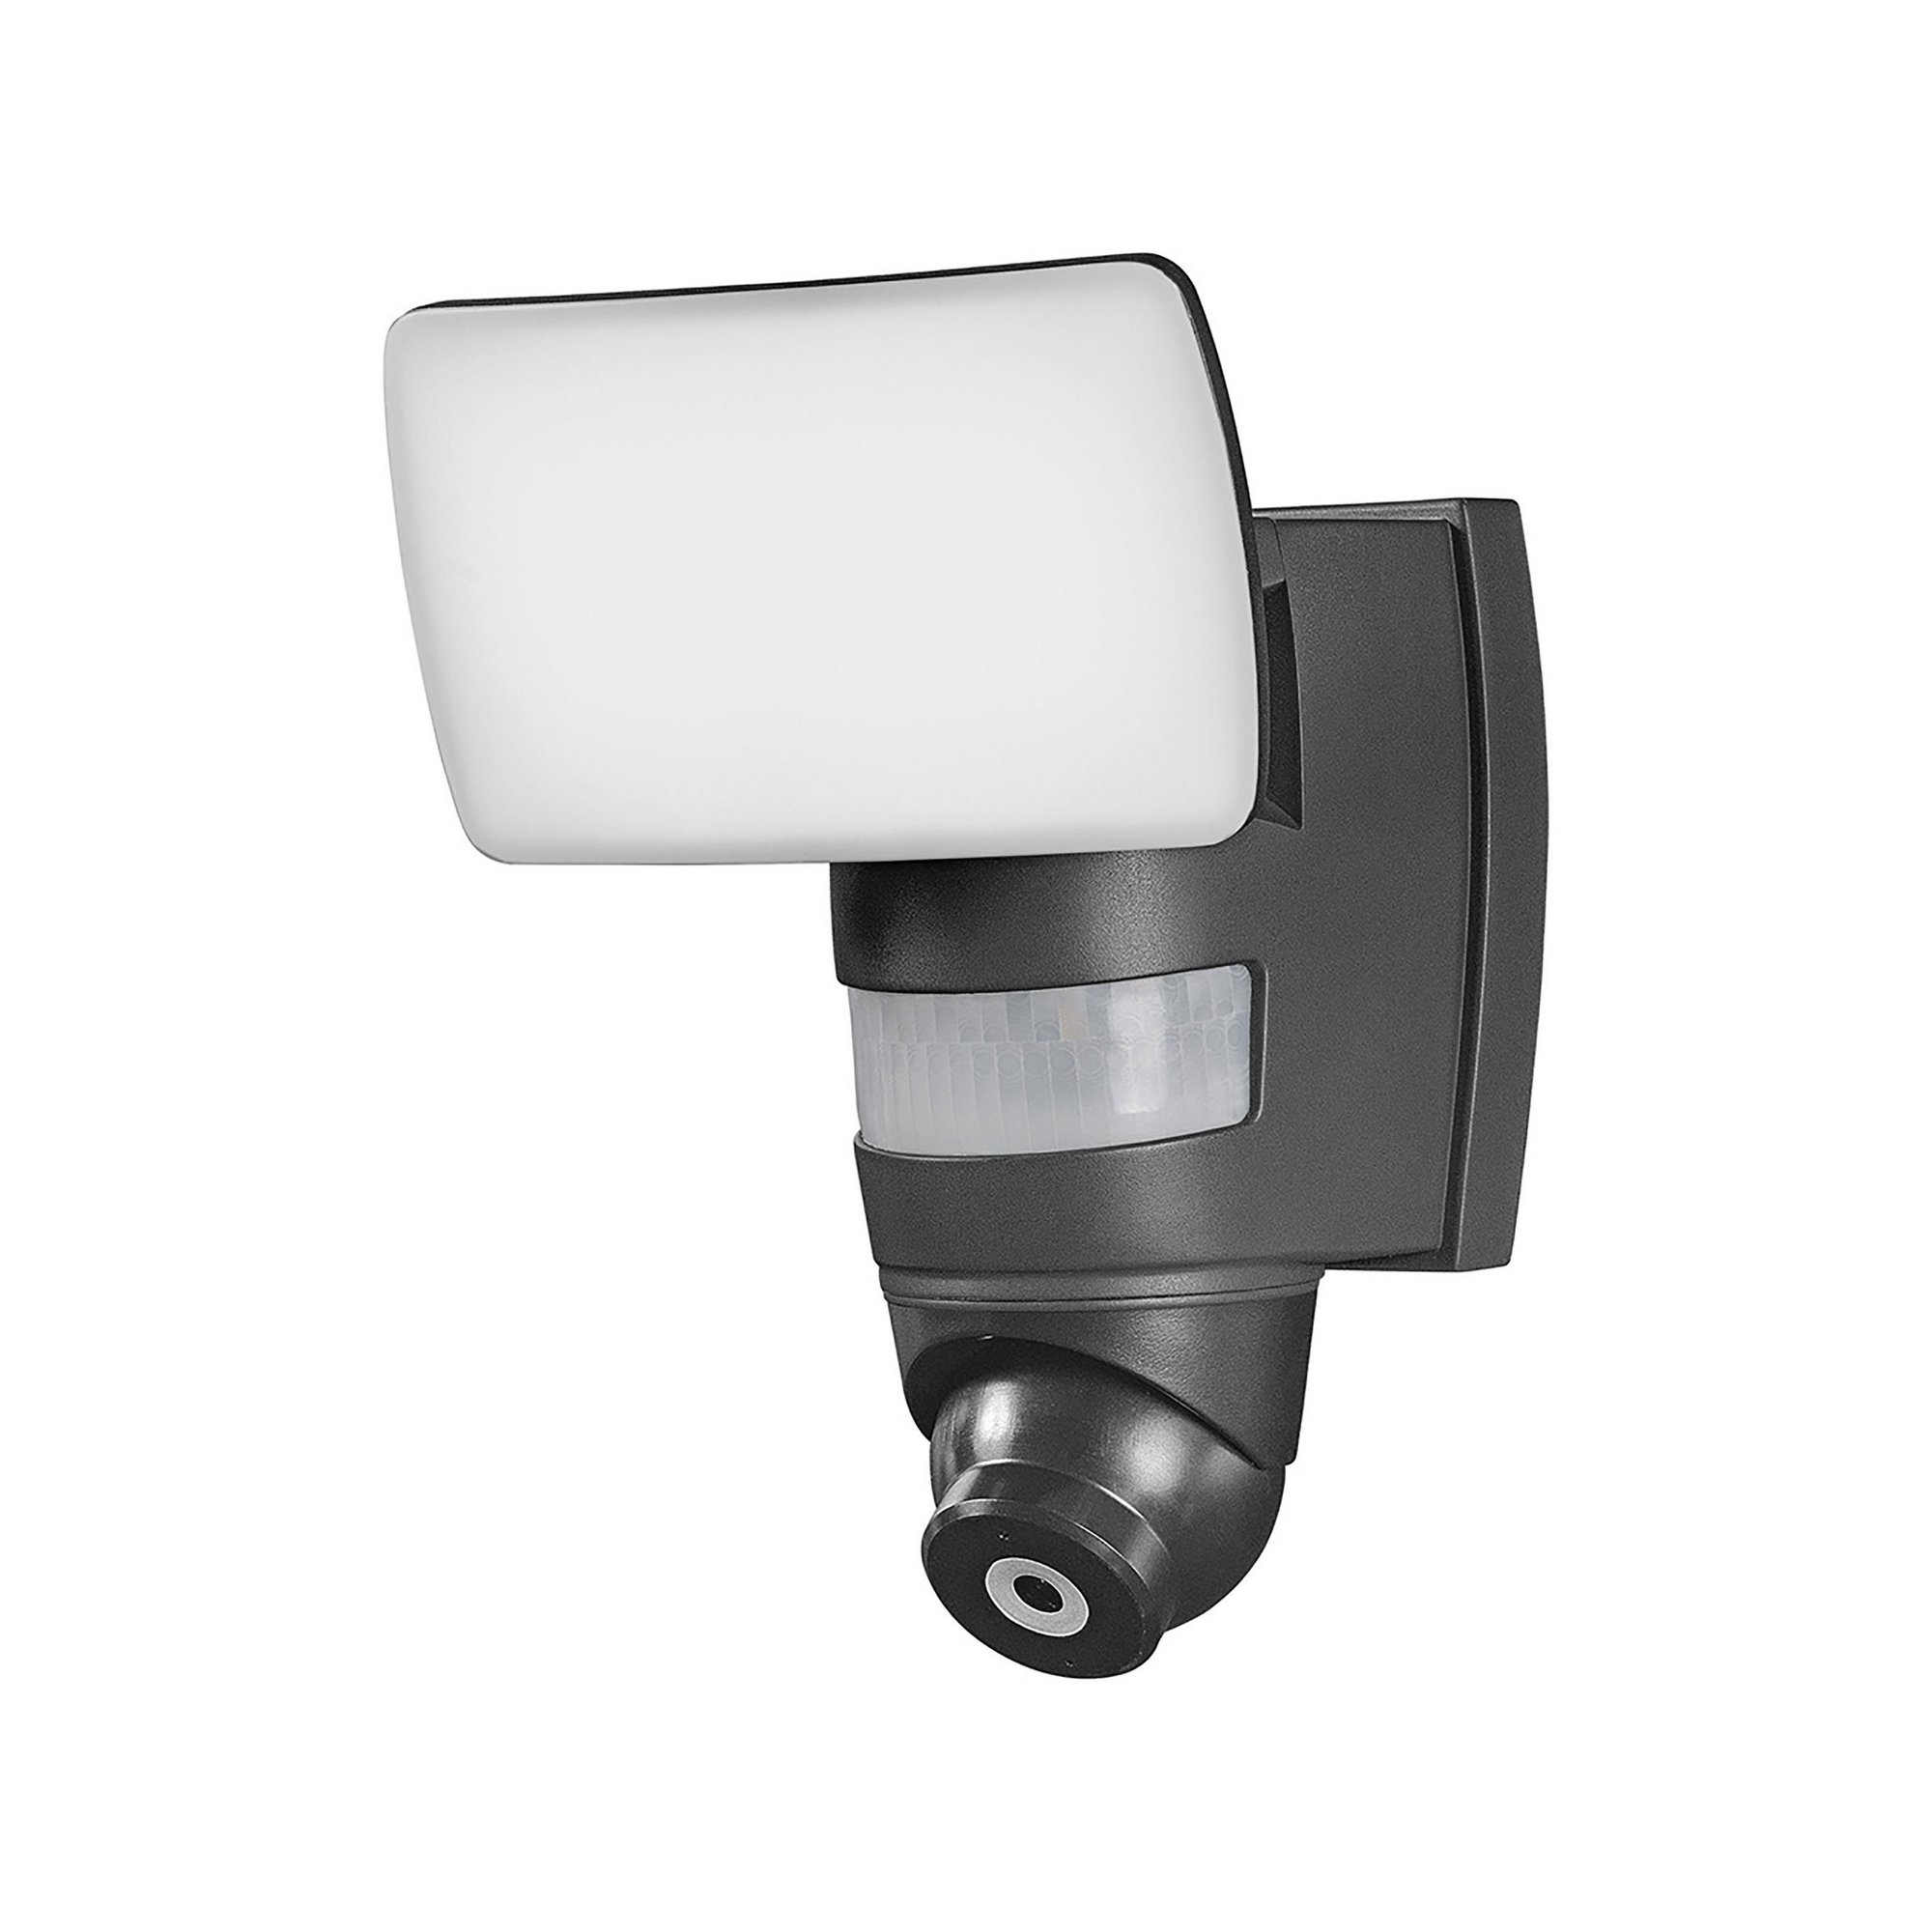 Image of Ledvance Smart+ Wi-Fi 24w Floodlight with Integrated Camera